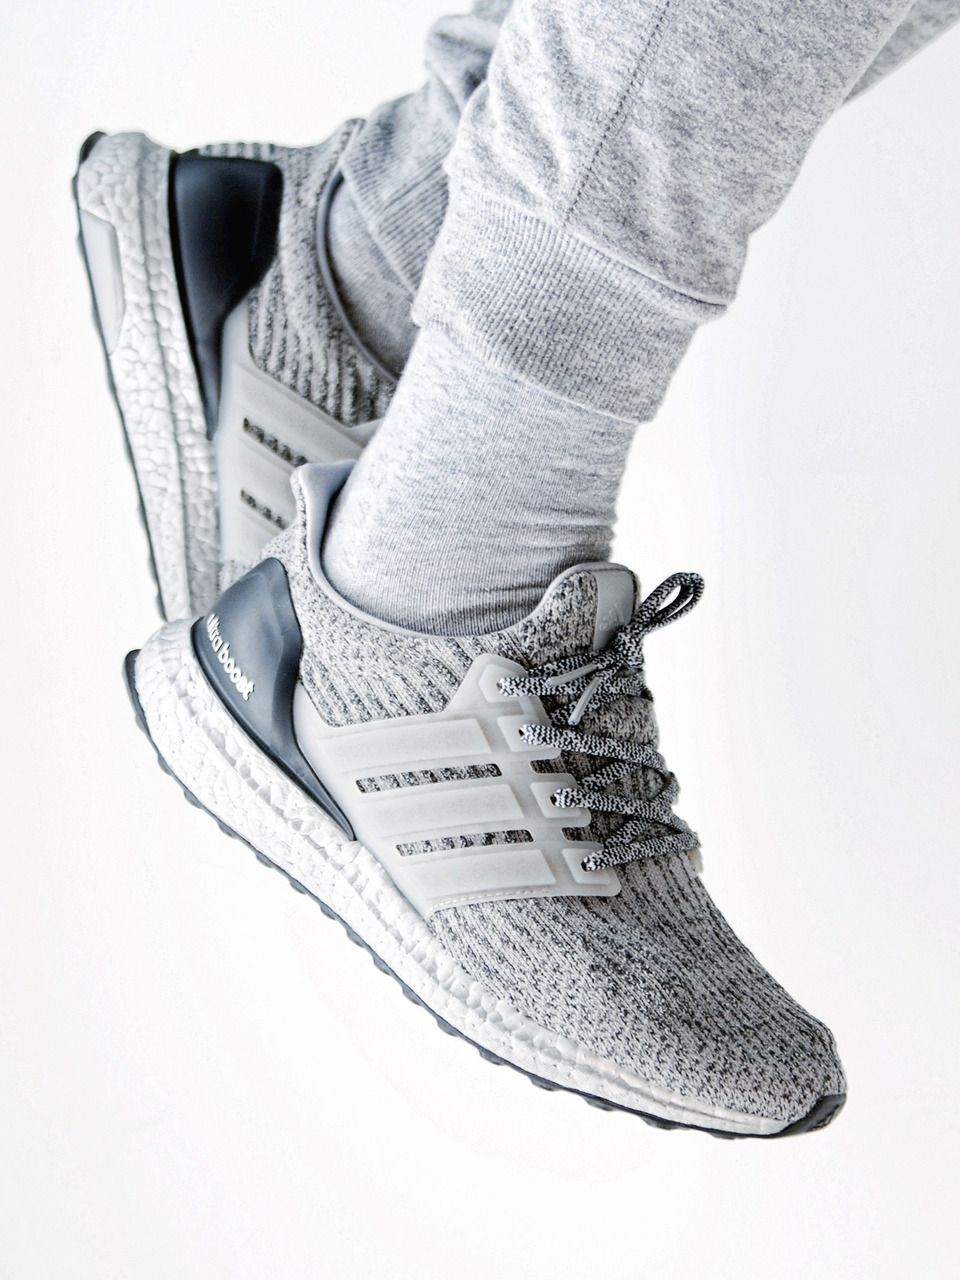 Adidas Ultra Boost 2018 3.0 Plata Pack / Super Bowl 2018 Boost (by jonomfg ff3399